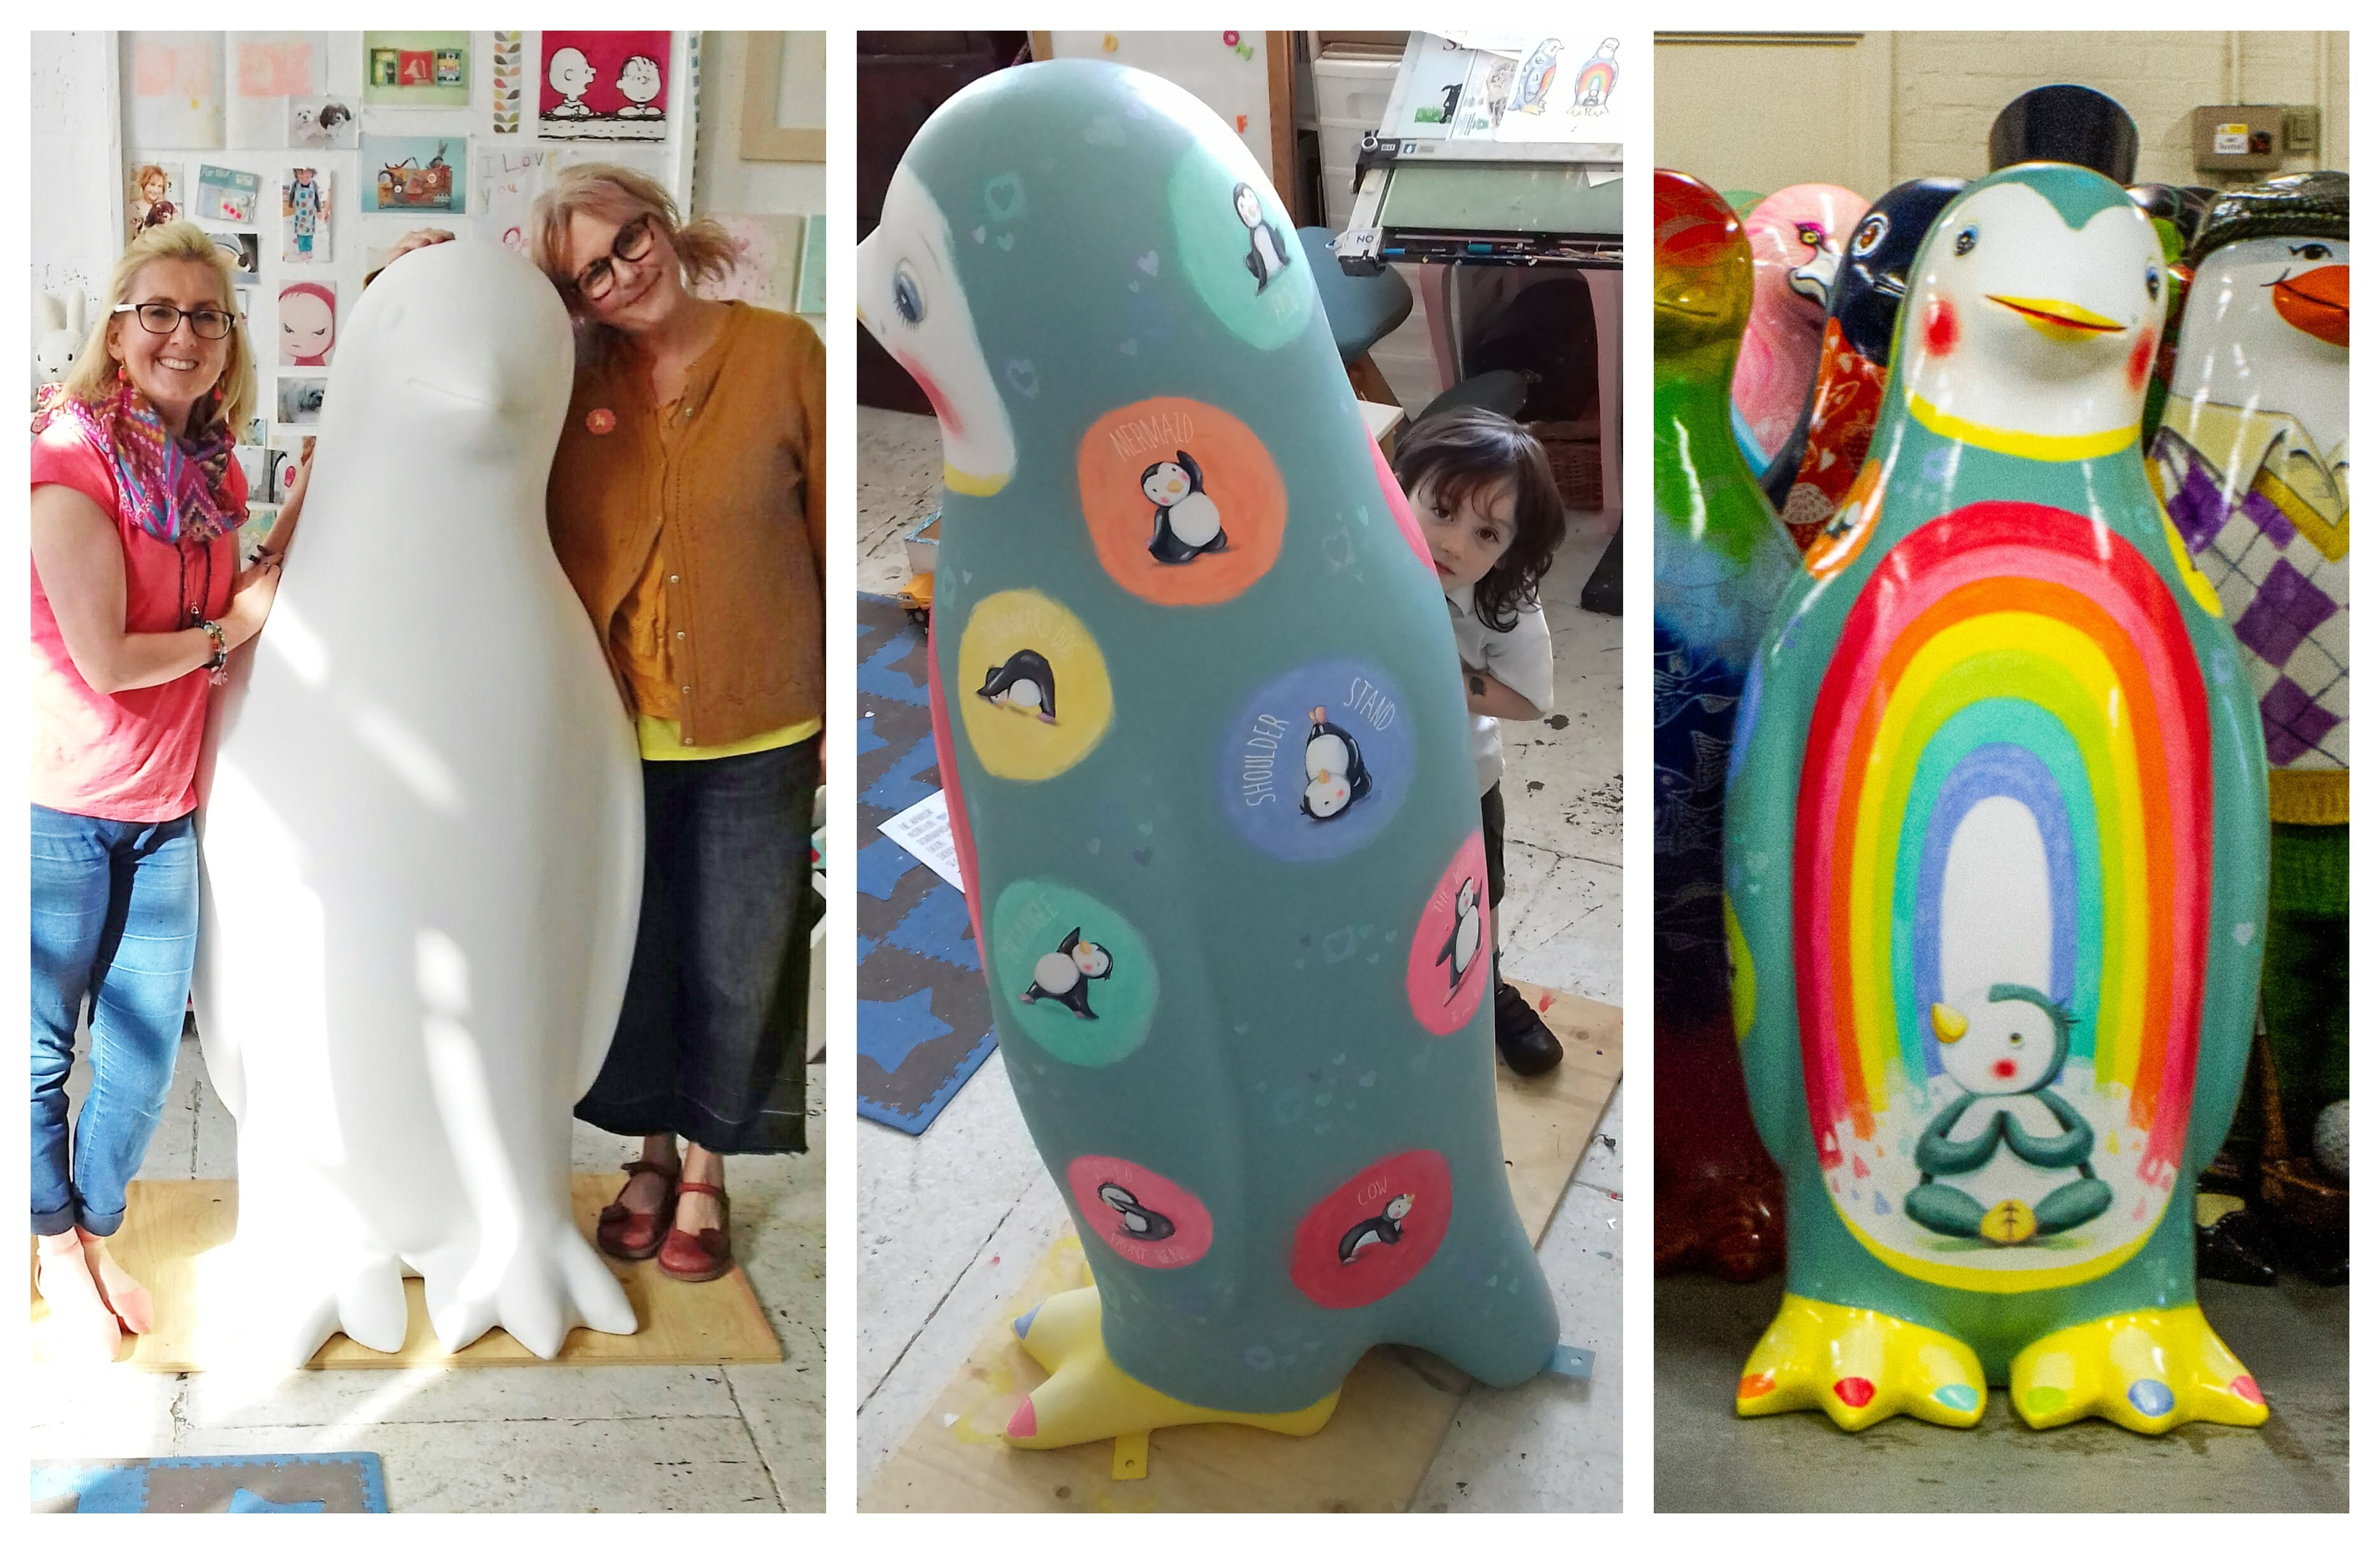 The Maggie's penguin inspired by Fi Munro. Pictures show  LindseyGardiner and Fi Miunro, Harris Weir with the penguin and the finished sculpture.